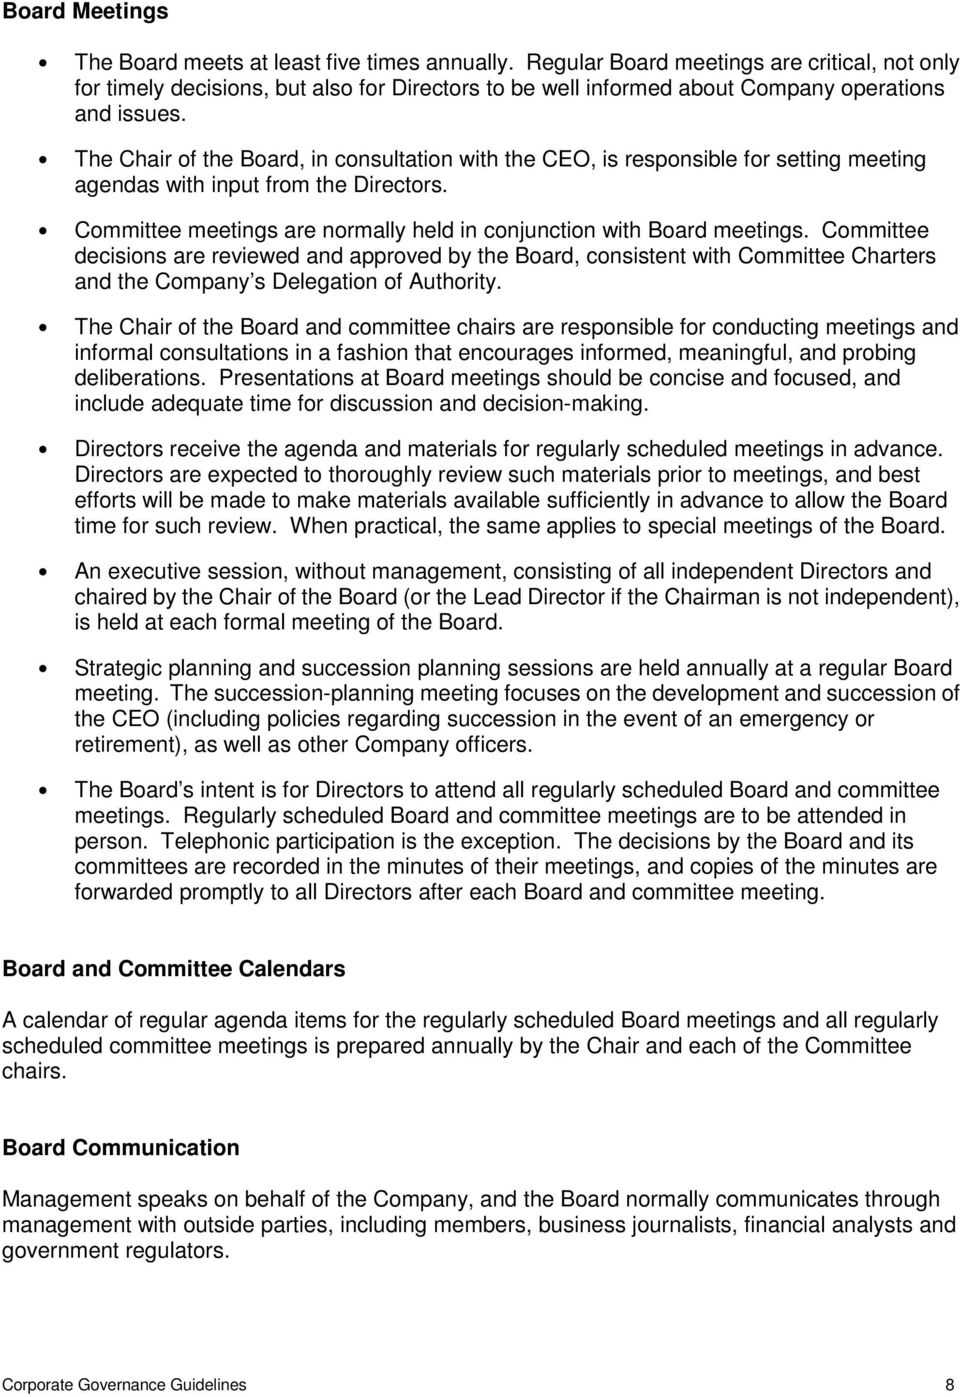 The Chair of the Board, in consultation with the CEO, is responsible for setting meeting agendas with input from the Directors. Committee meetings are normally held in conjunction with Board meetings.